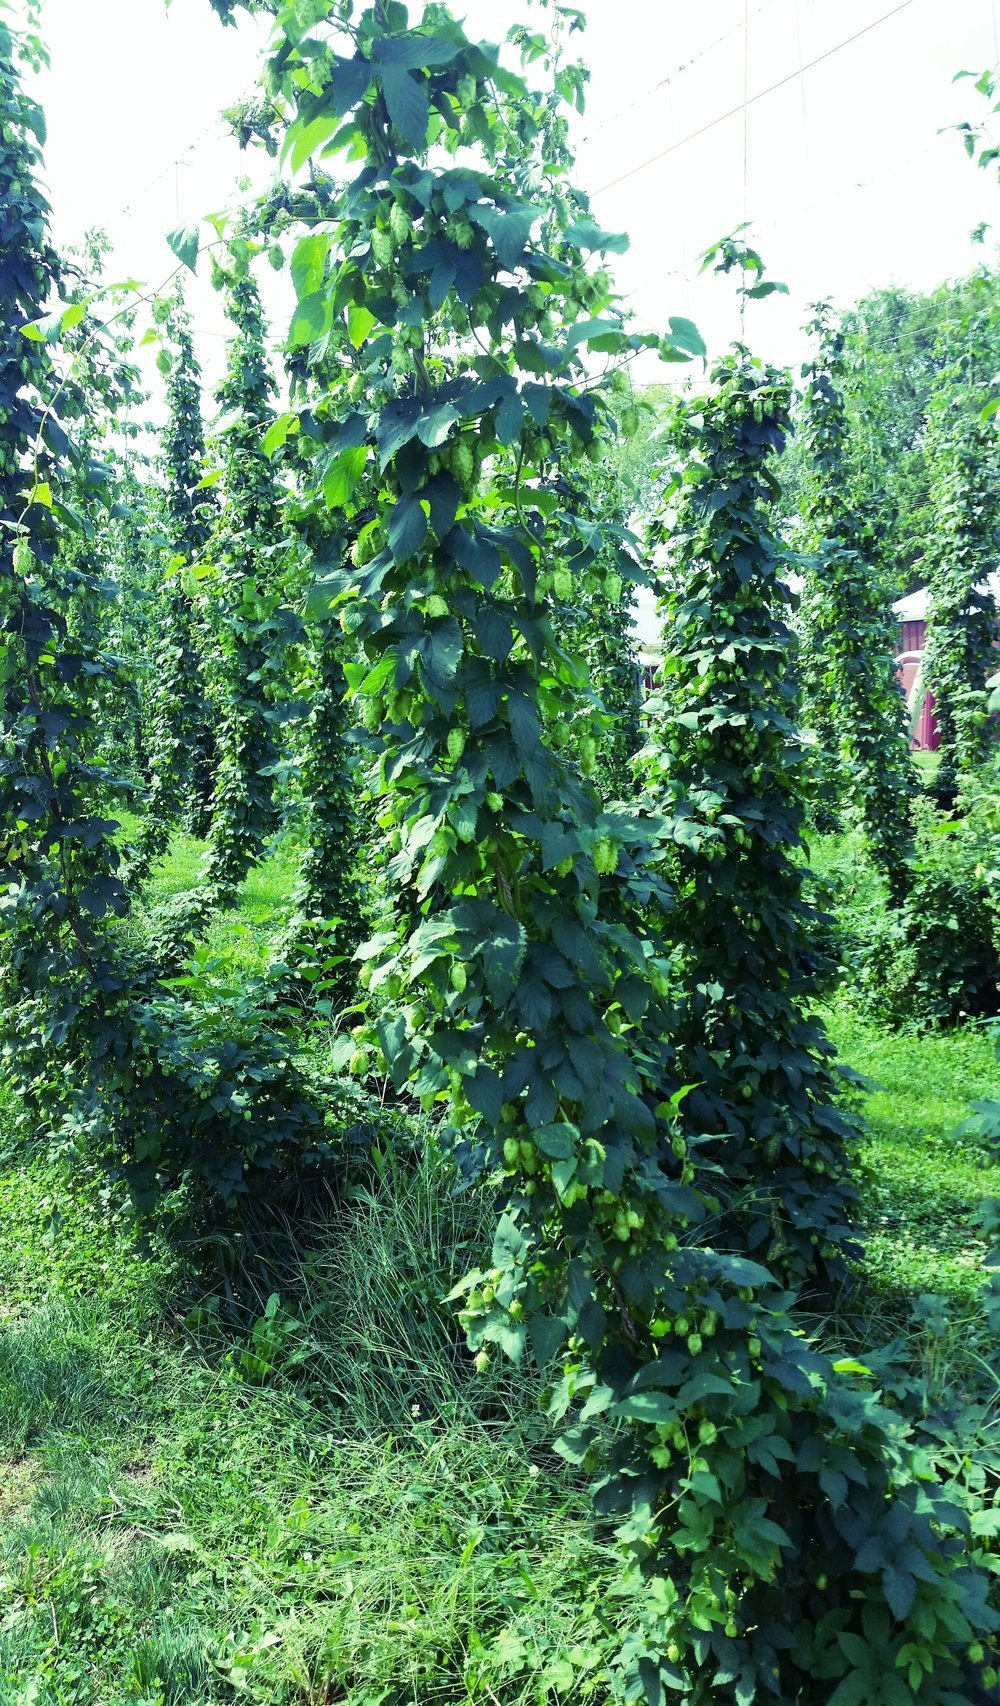 Midwest Hop Producers - from a visit this summer to their hop yard.